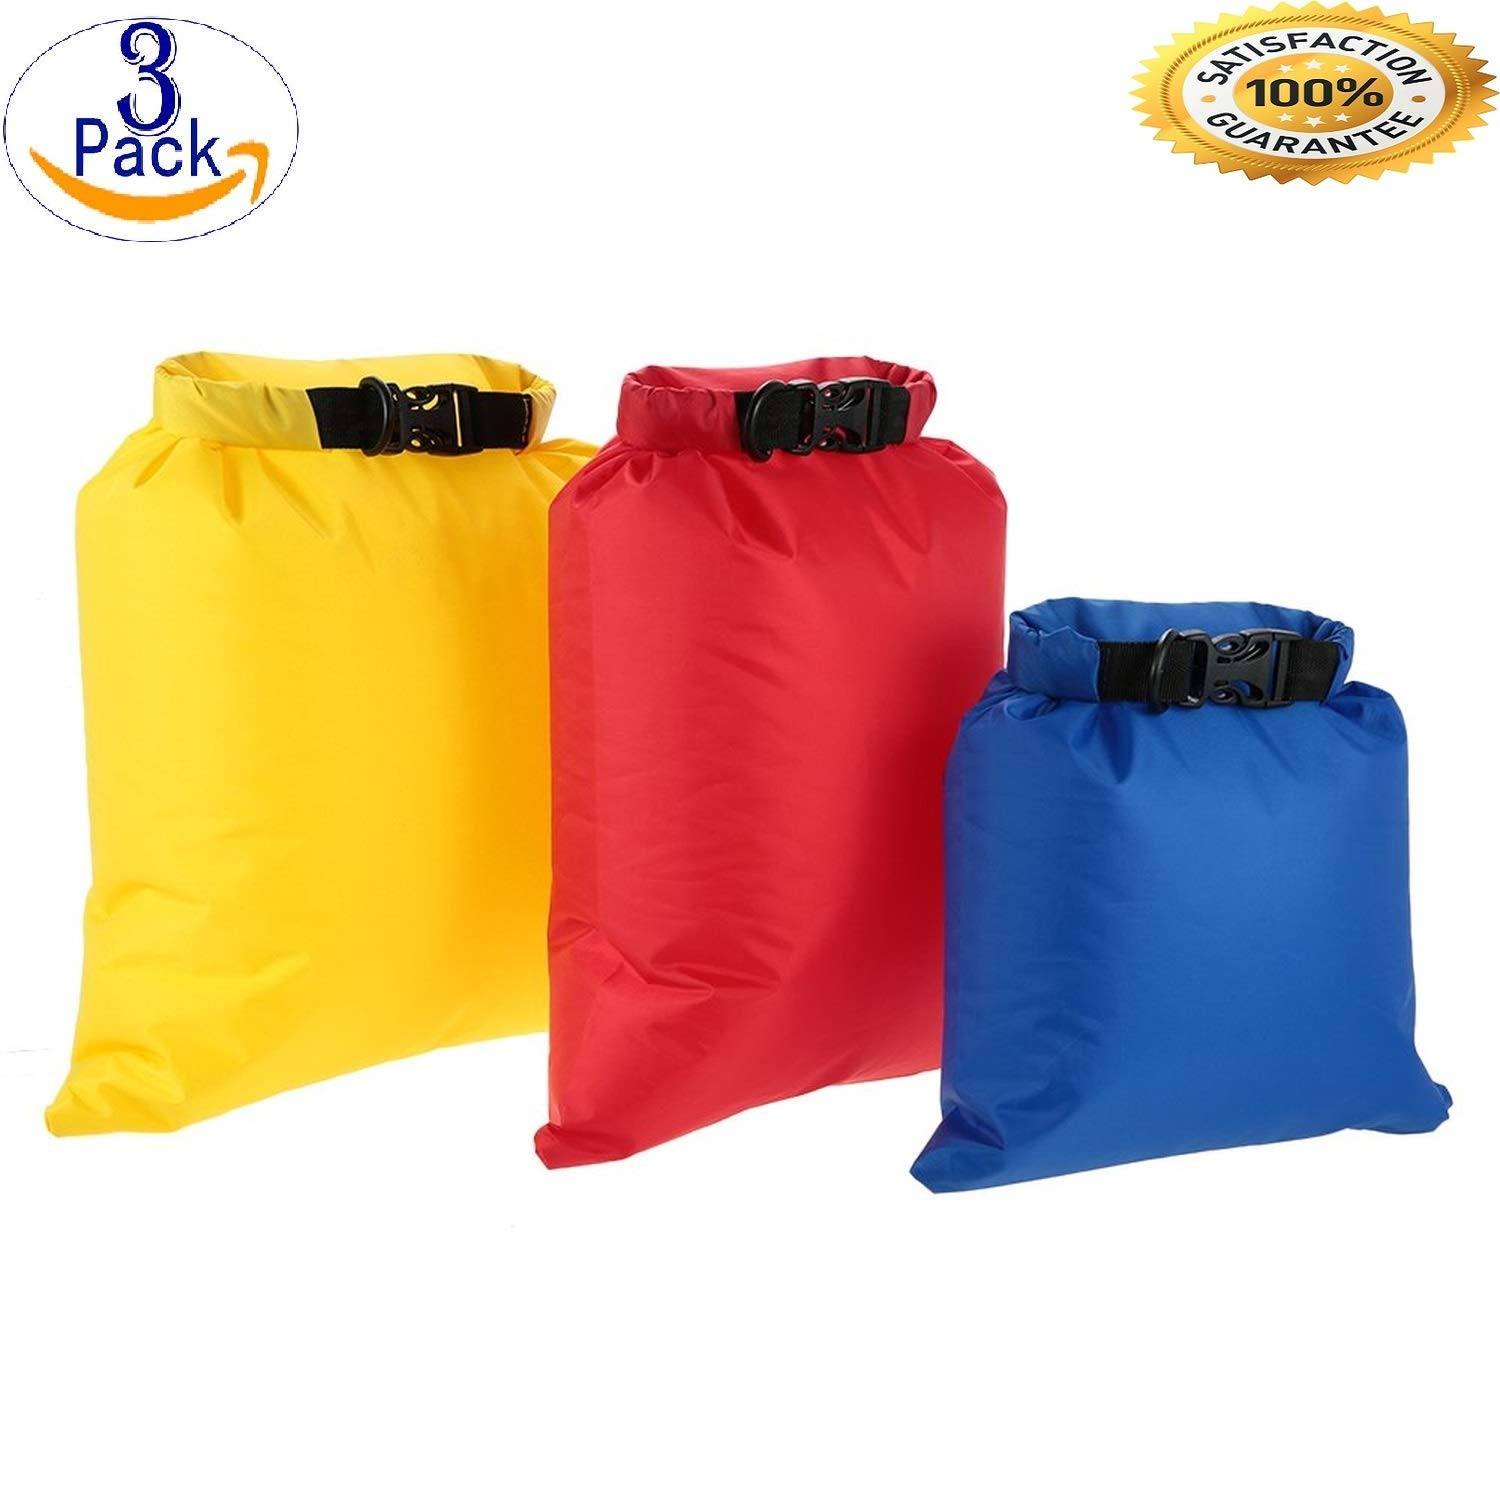 addb147bc53c Get Quotations · Pack of 3 lightweight waterproof Foldable pouch set pack  dry bag sacks Keep Your Phone License